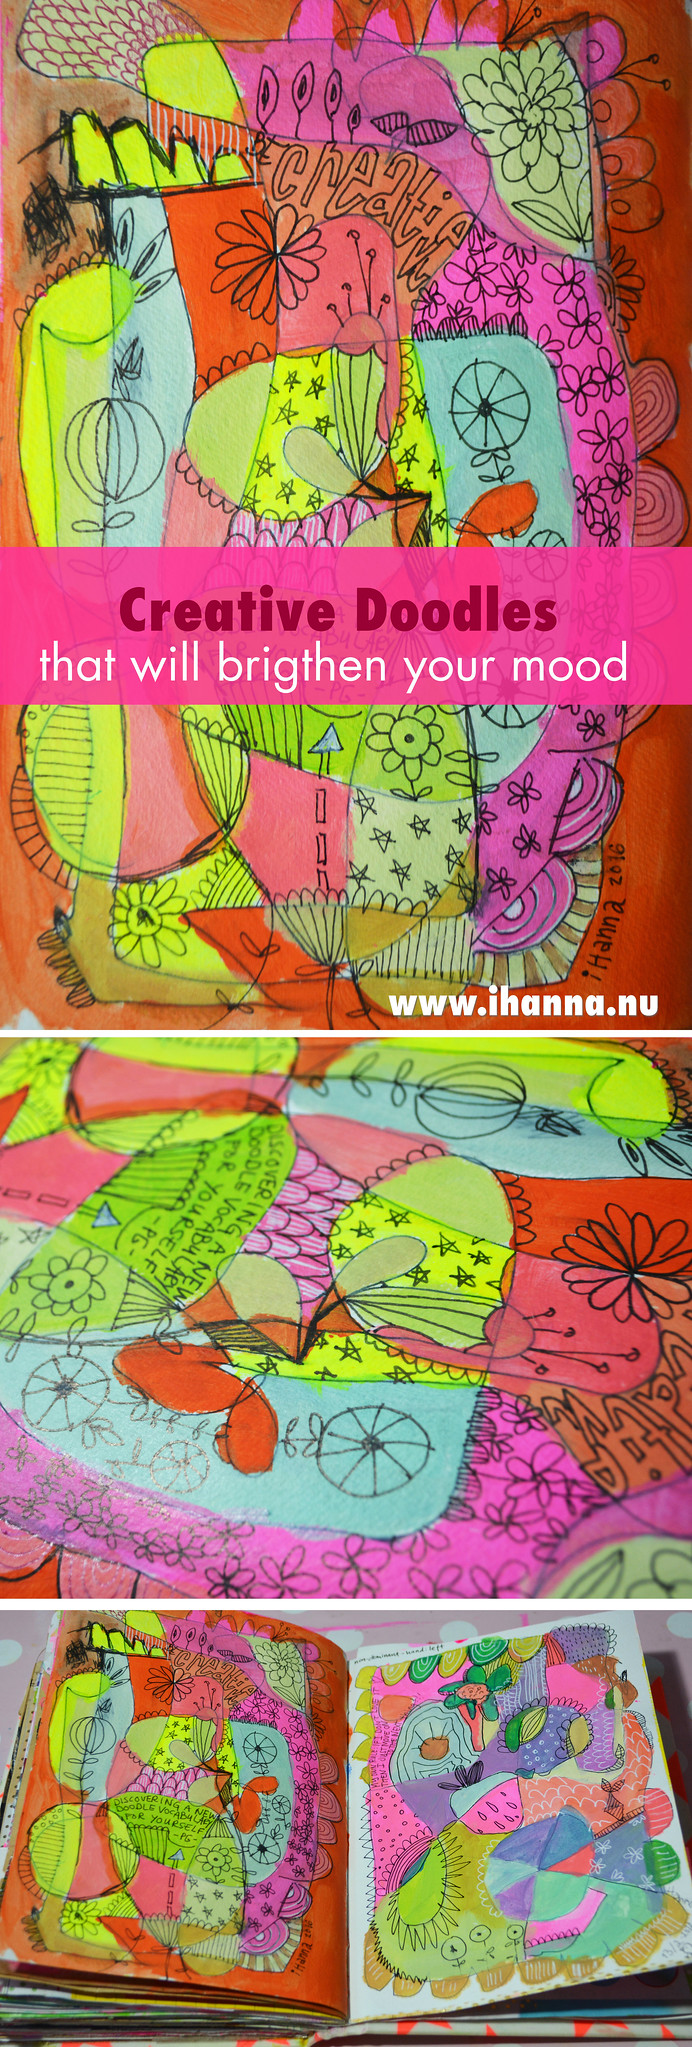 Inspired doodles from my beloved Creative Sketchbook- Art Journal pages by @ihanna